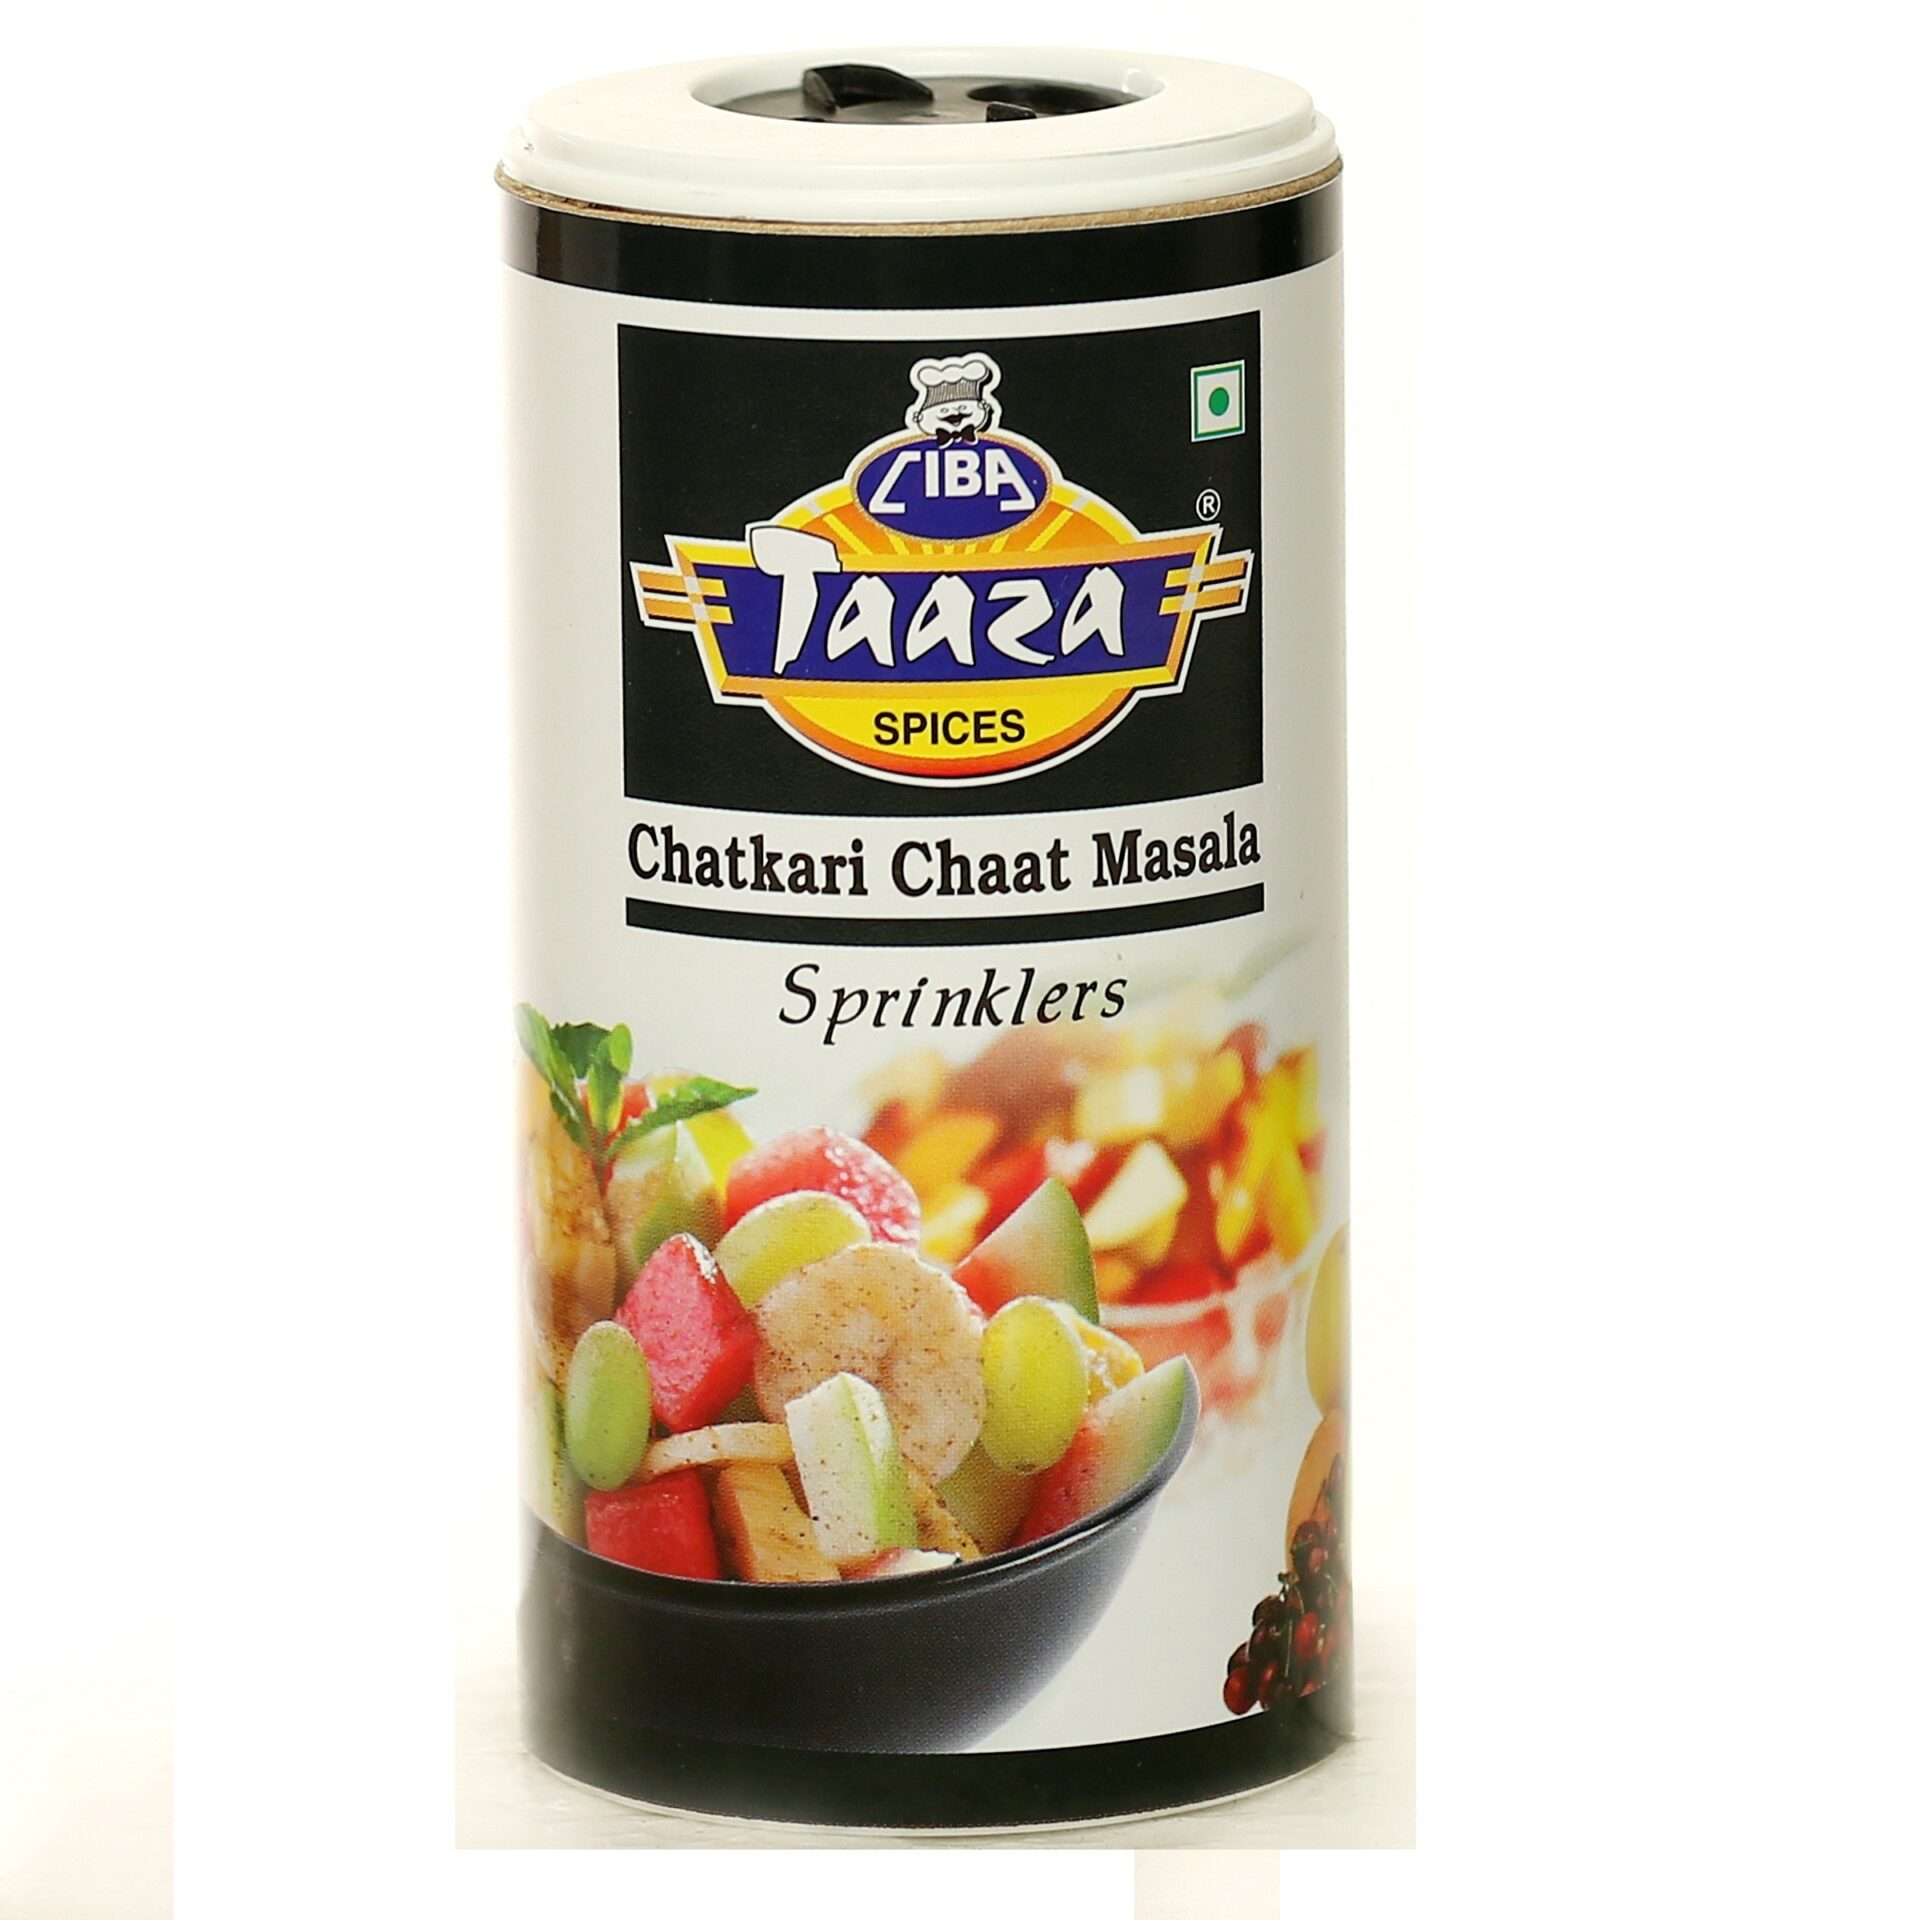 chaat masala powder sprinkler 100g